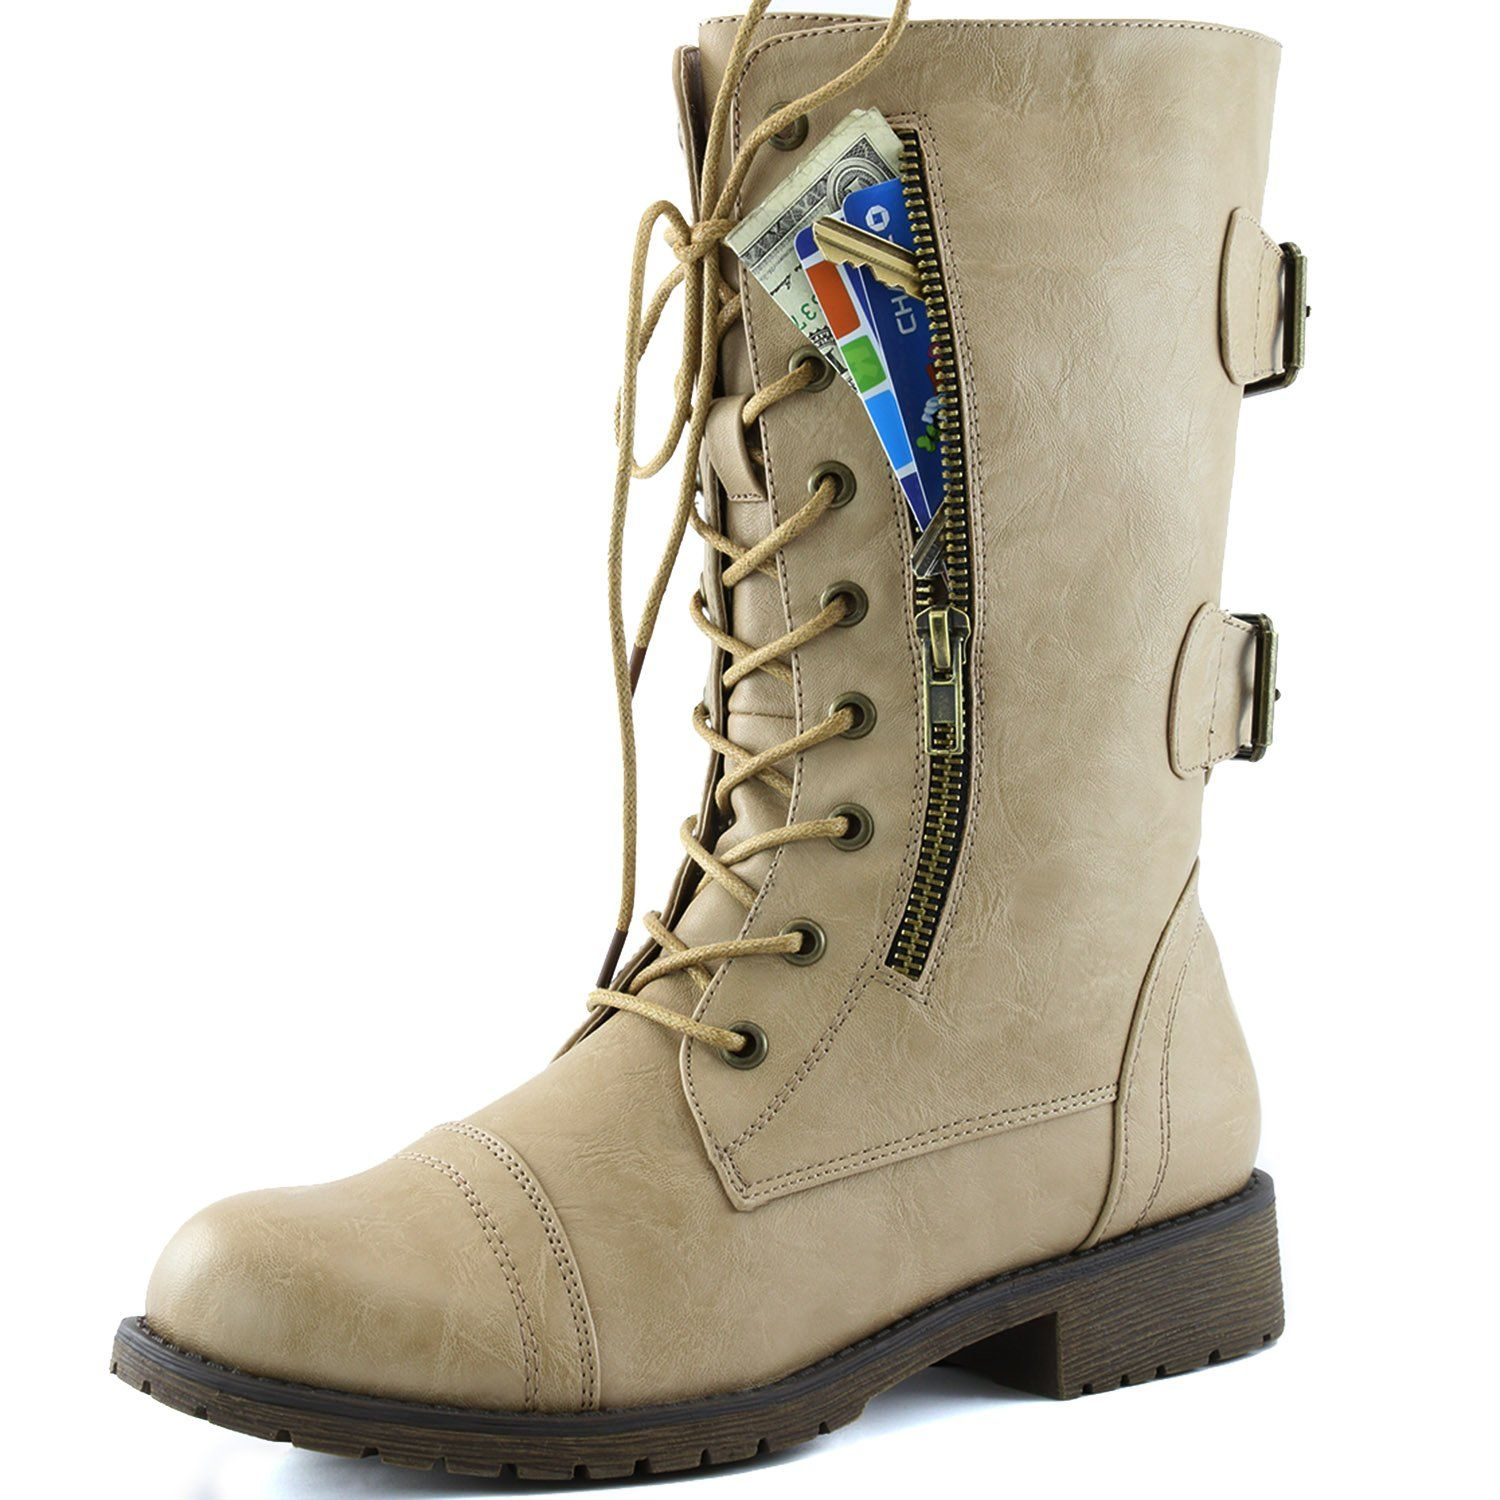 Women's Military Lace Up Buckle Combat Boots Mid Knee High Exclusive Credit Card Pocket Navy